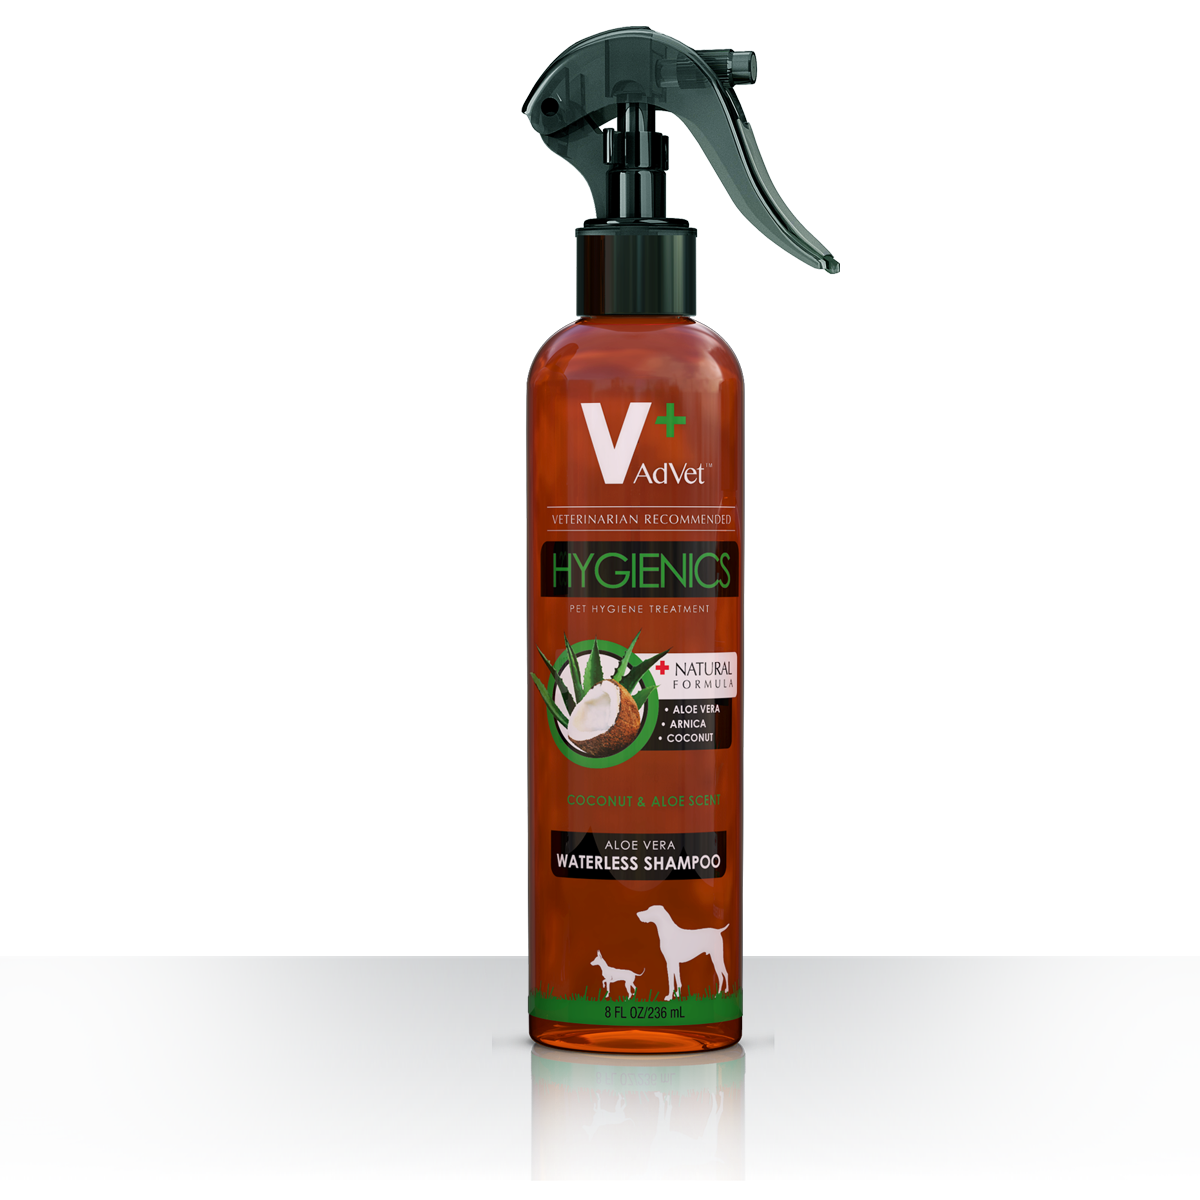 8oz. Aloe Vera Waterless Shampoo Spray